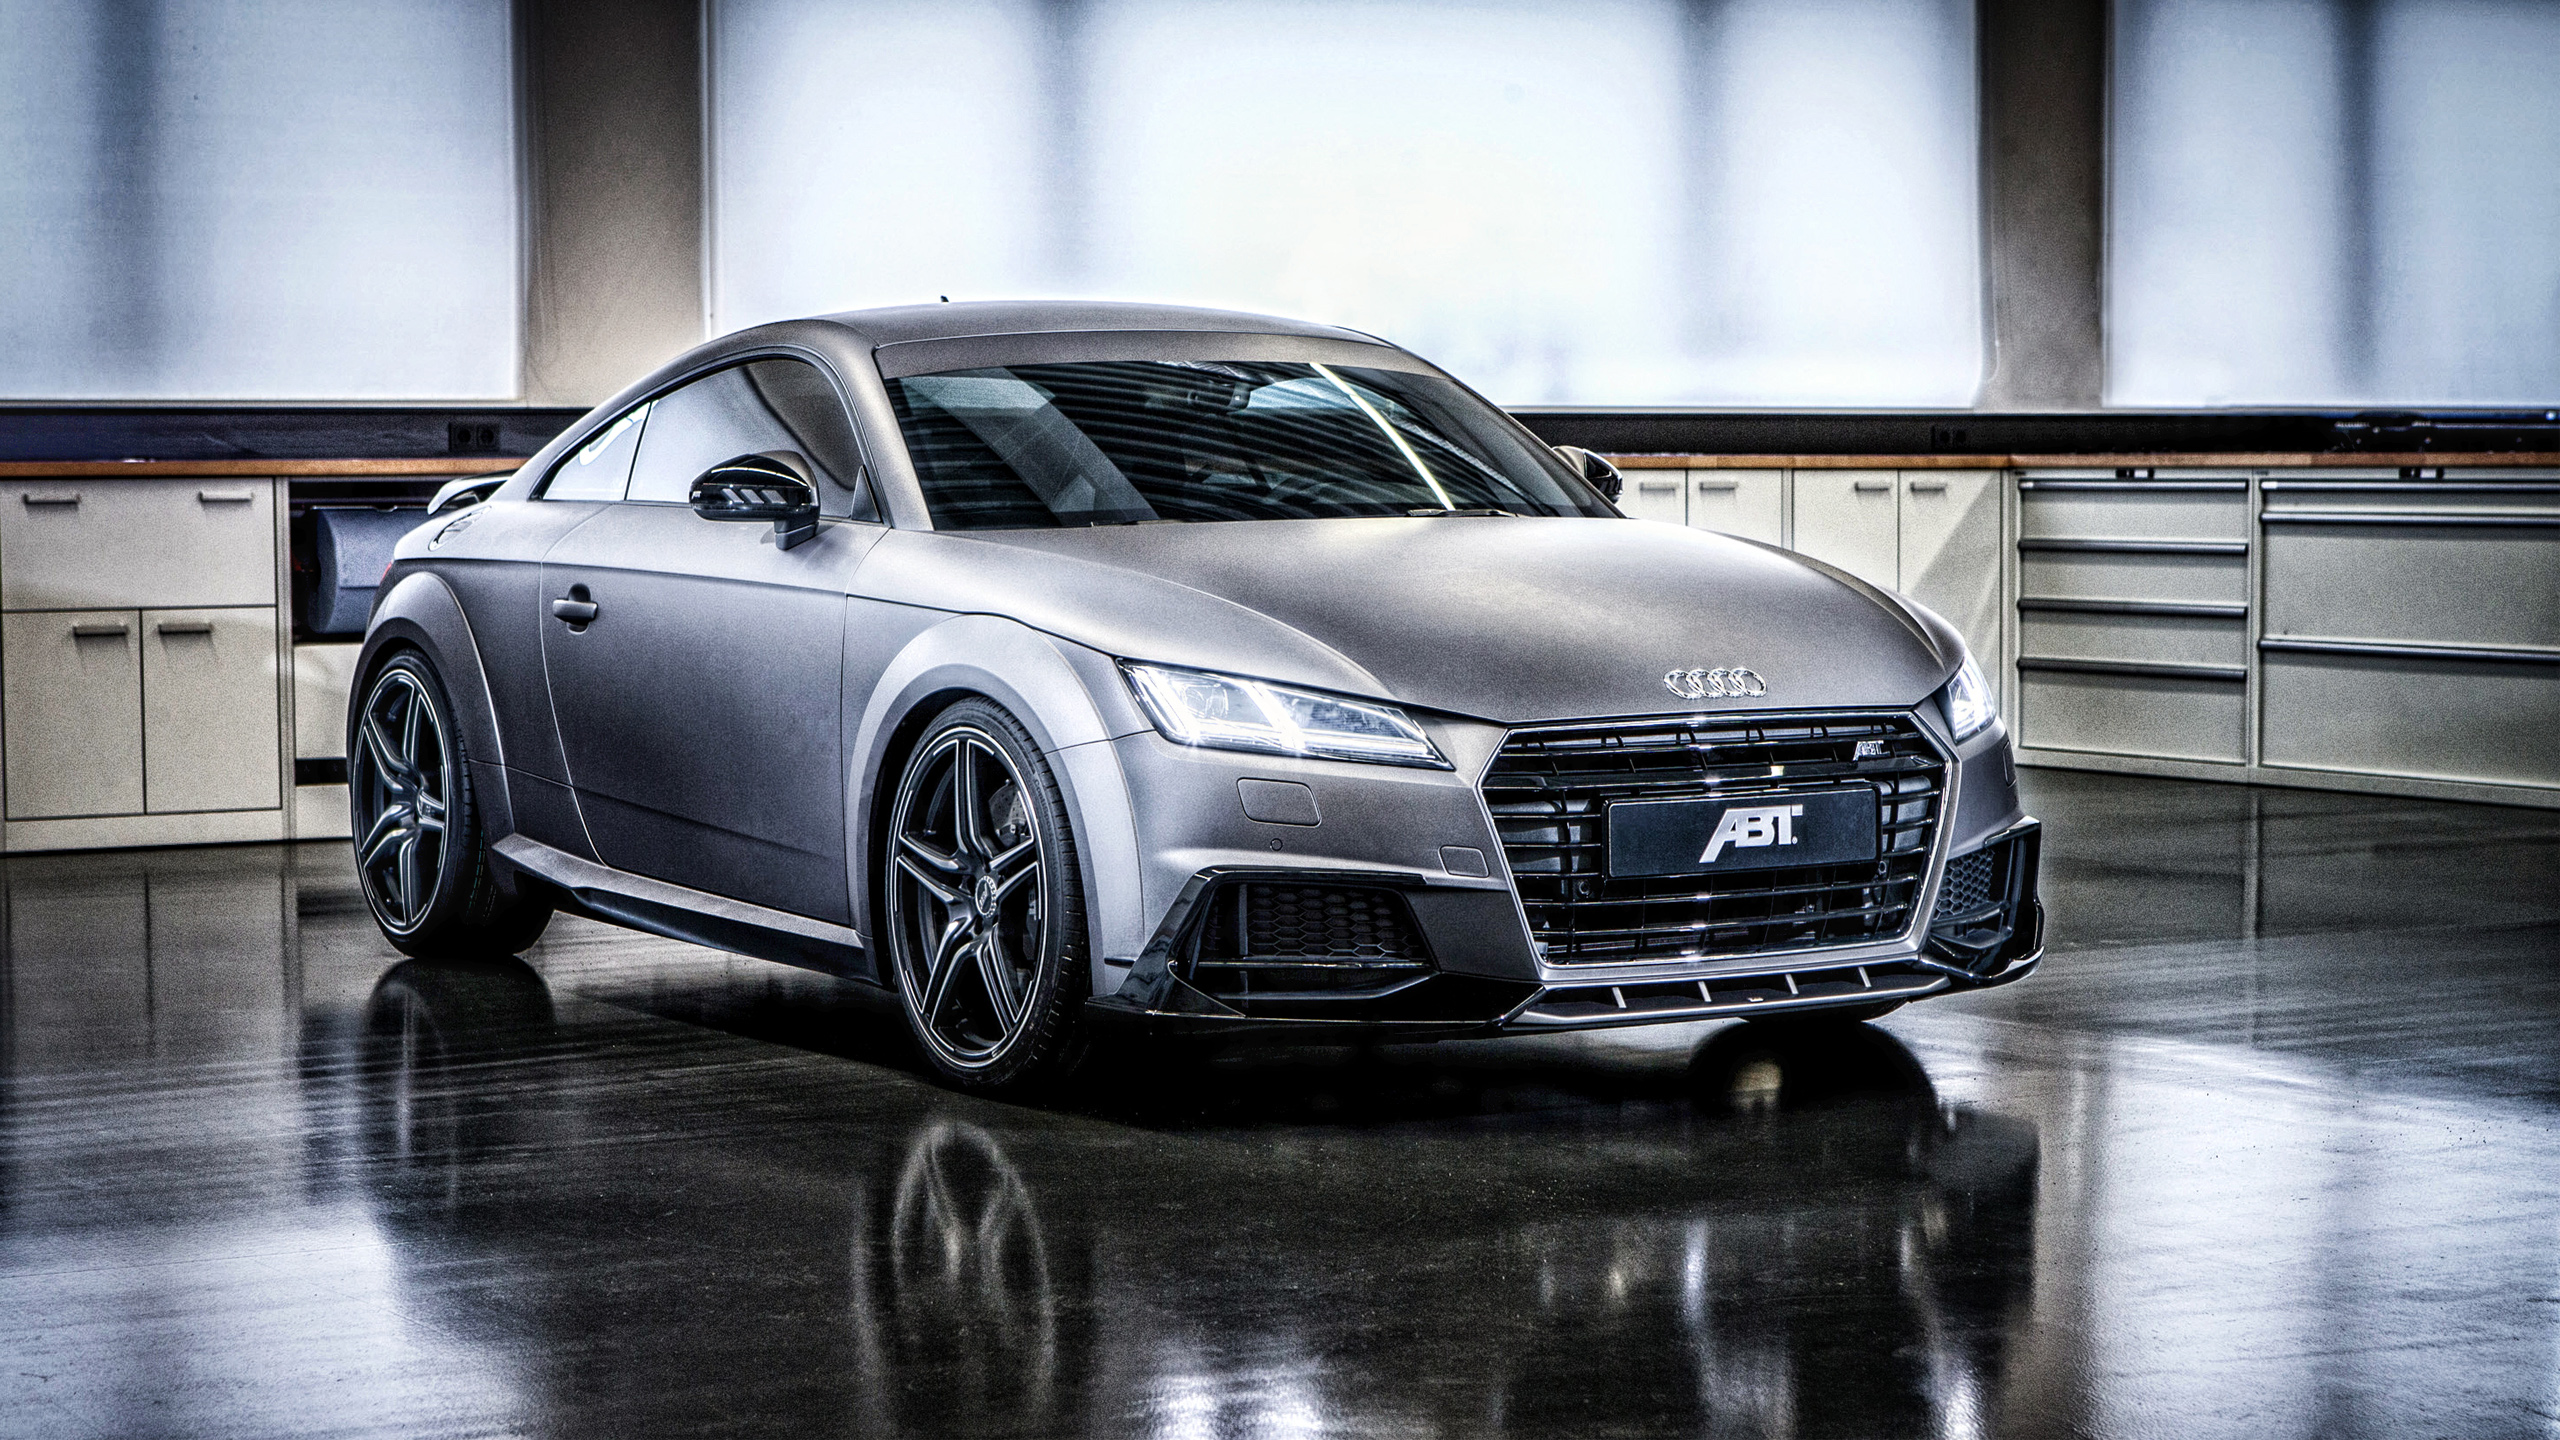 2015 ABT Audi TT RS Wallpaper | HD Car Wallpapers